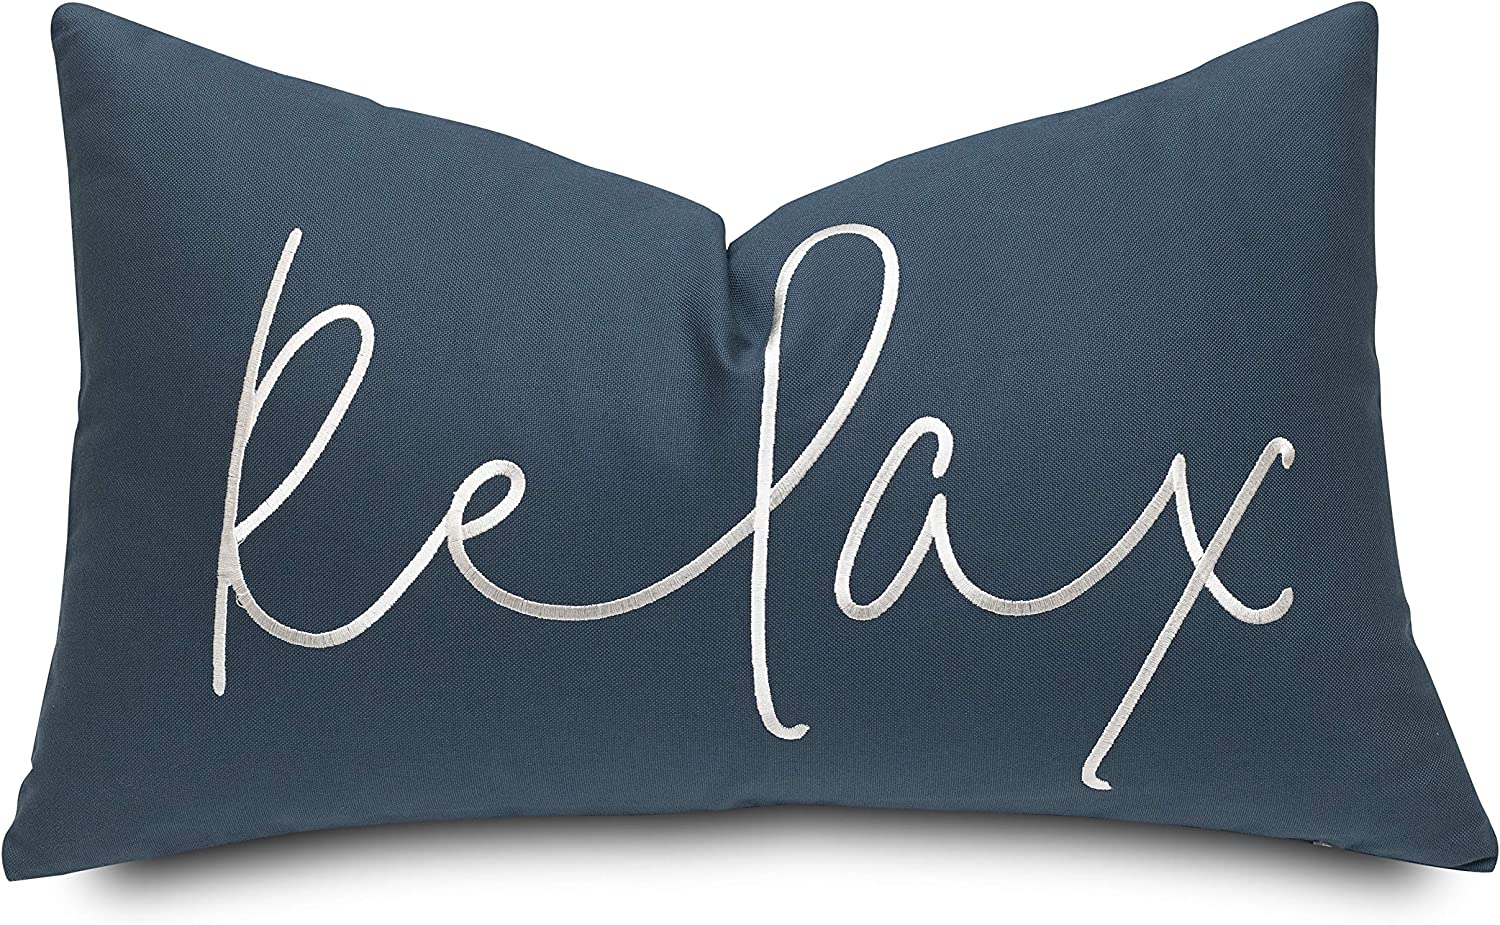 Rudransha Relax Sentiment Max 72% OFF Embroidered 4 years warranty T Accent Decorative Oblong